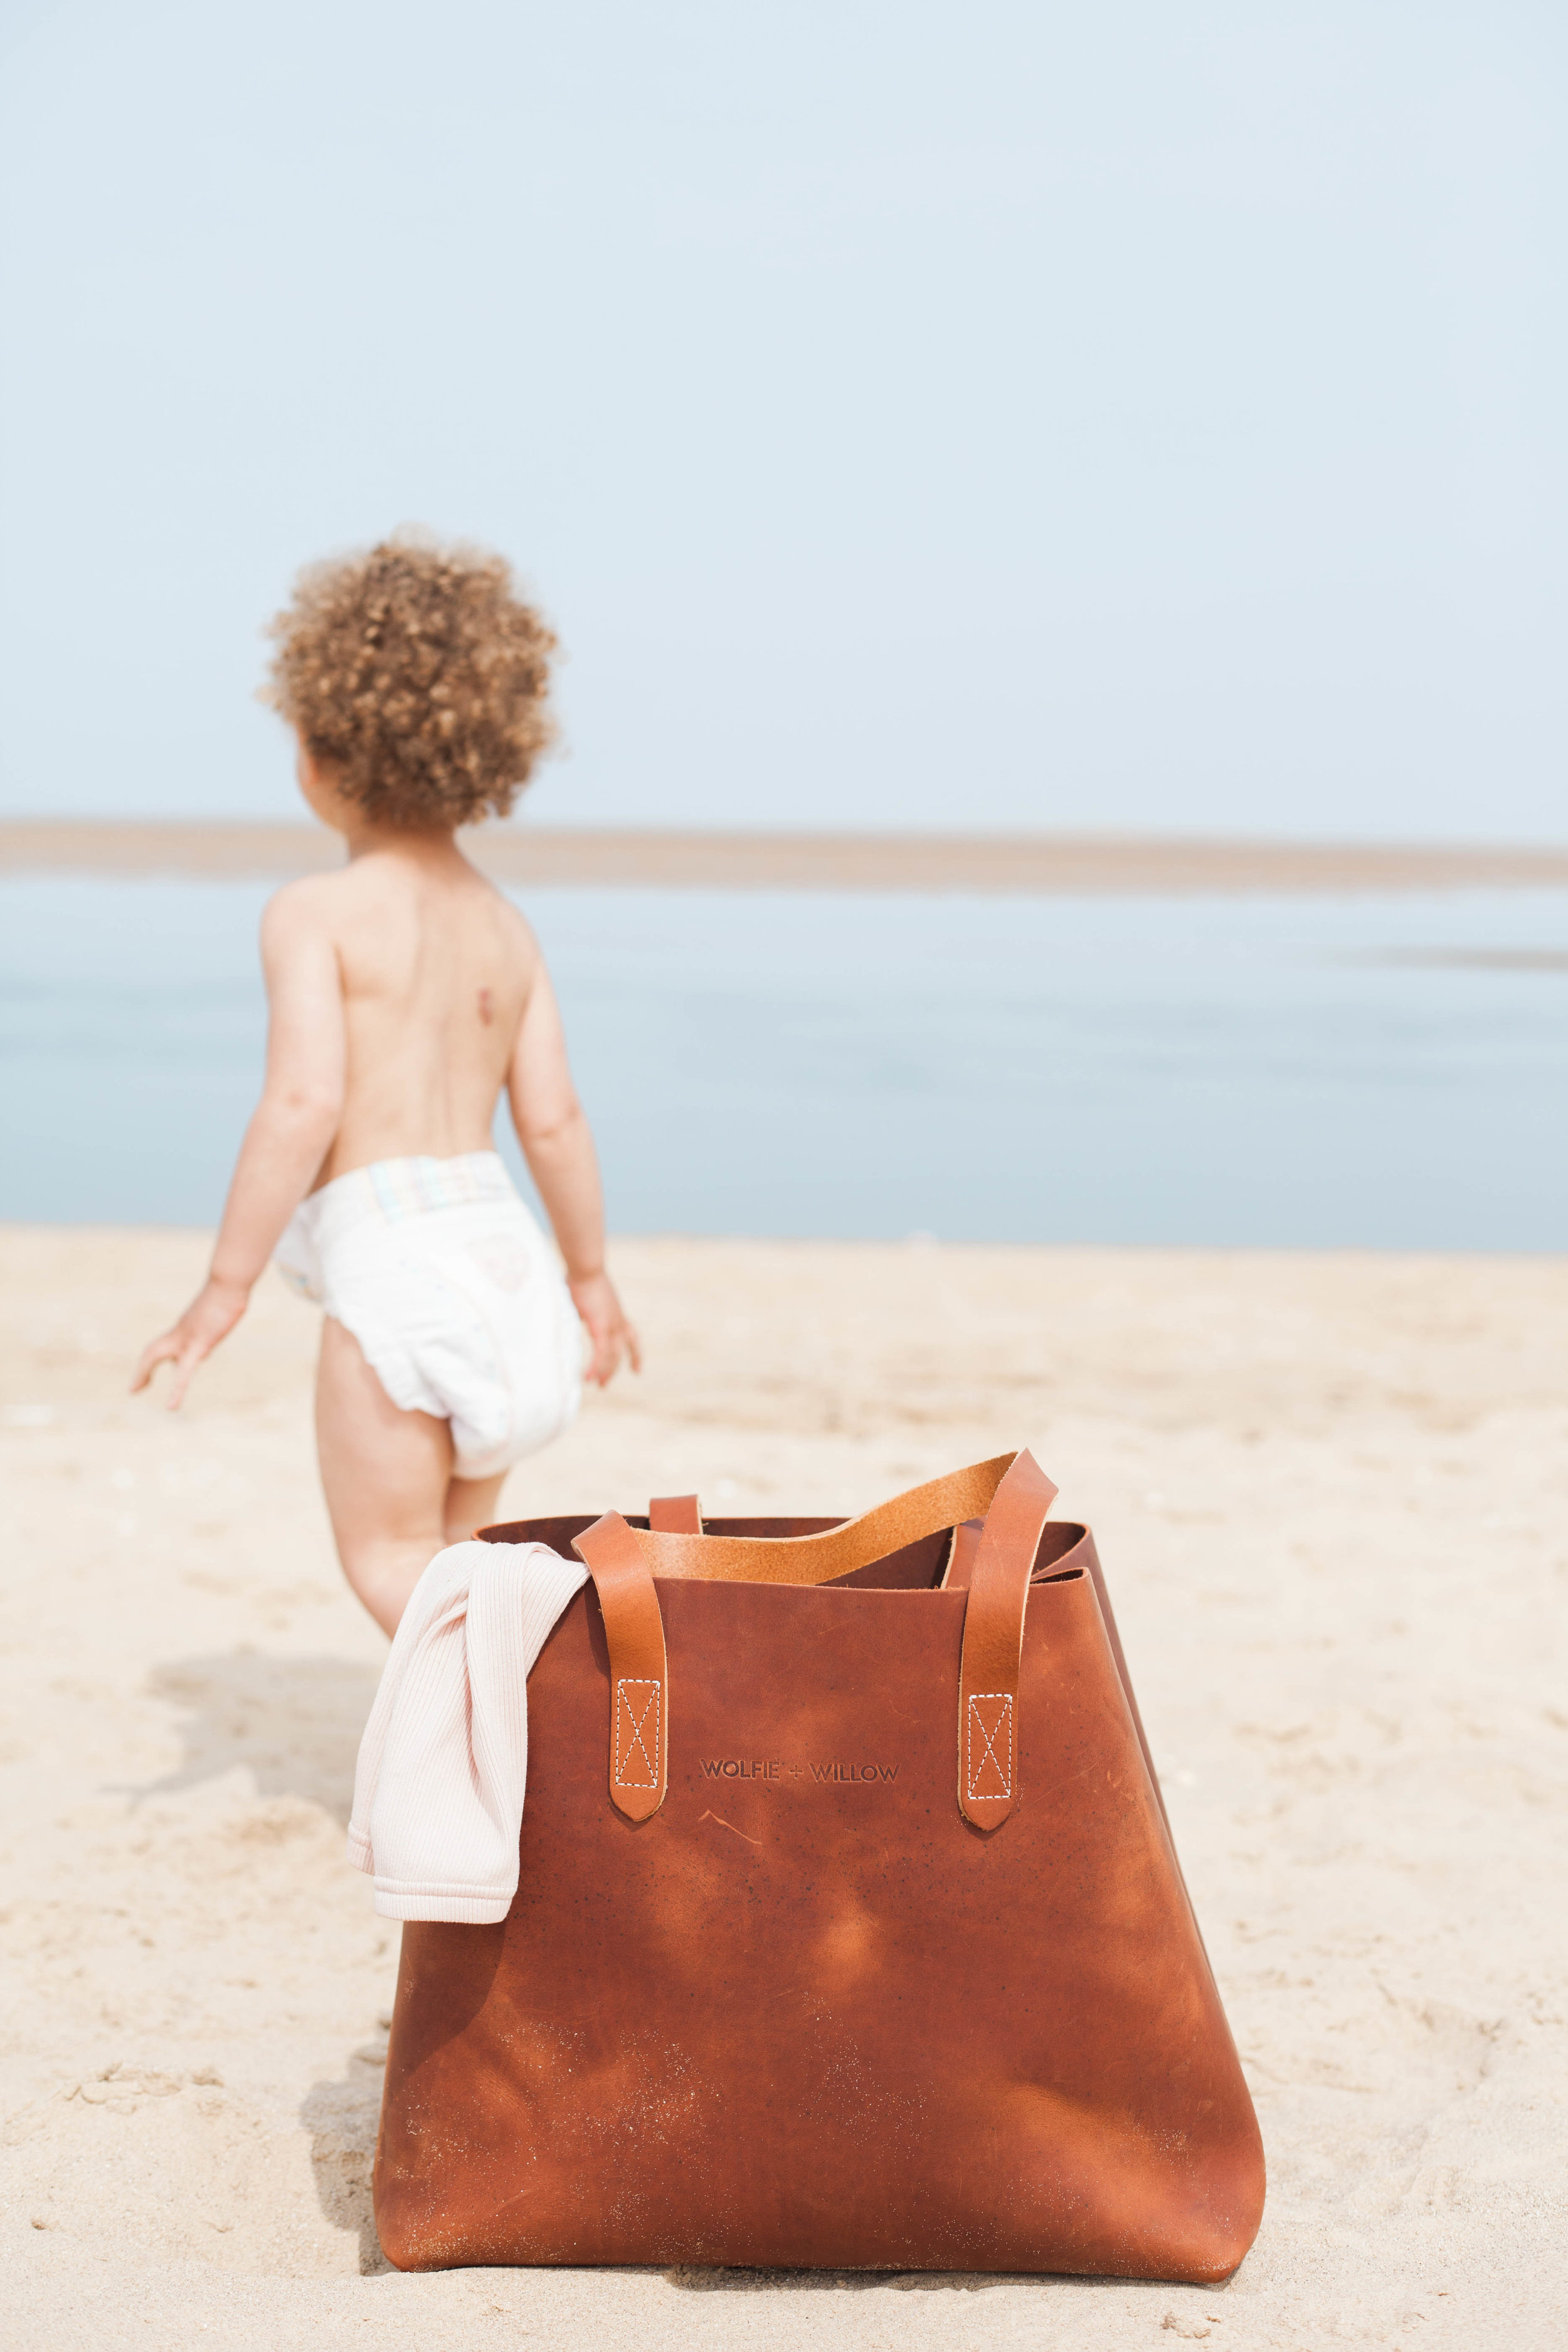 Wolfe + Willow leather tote bag